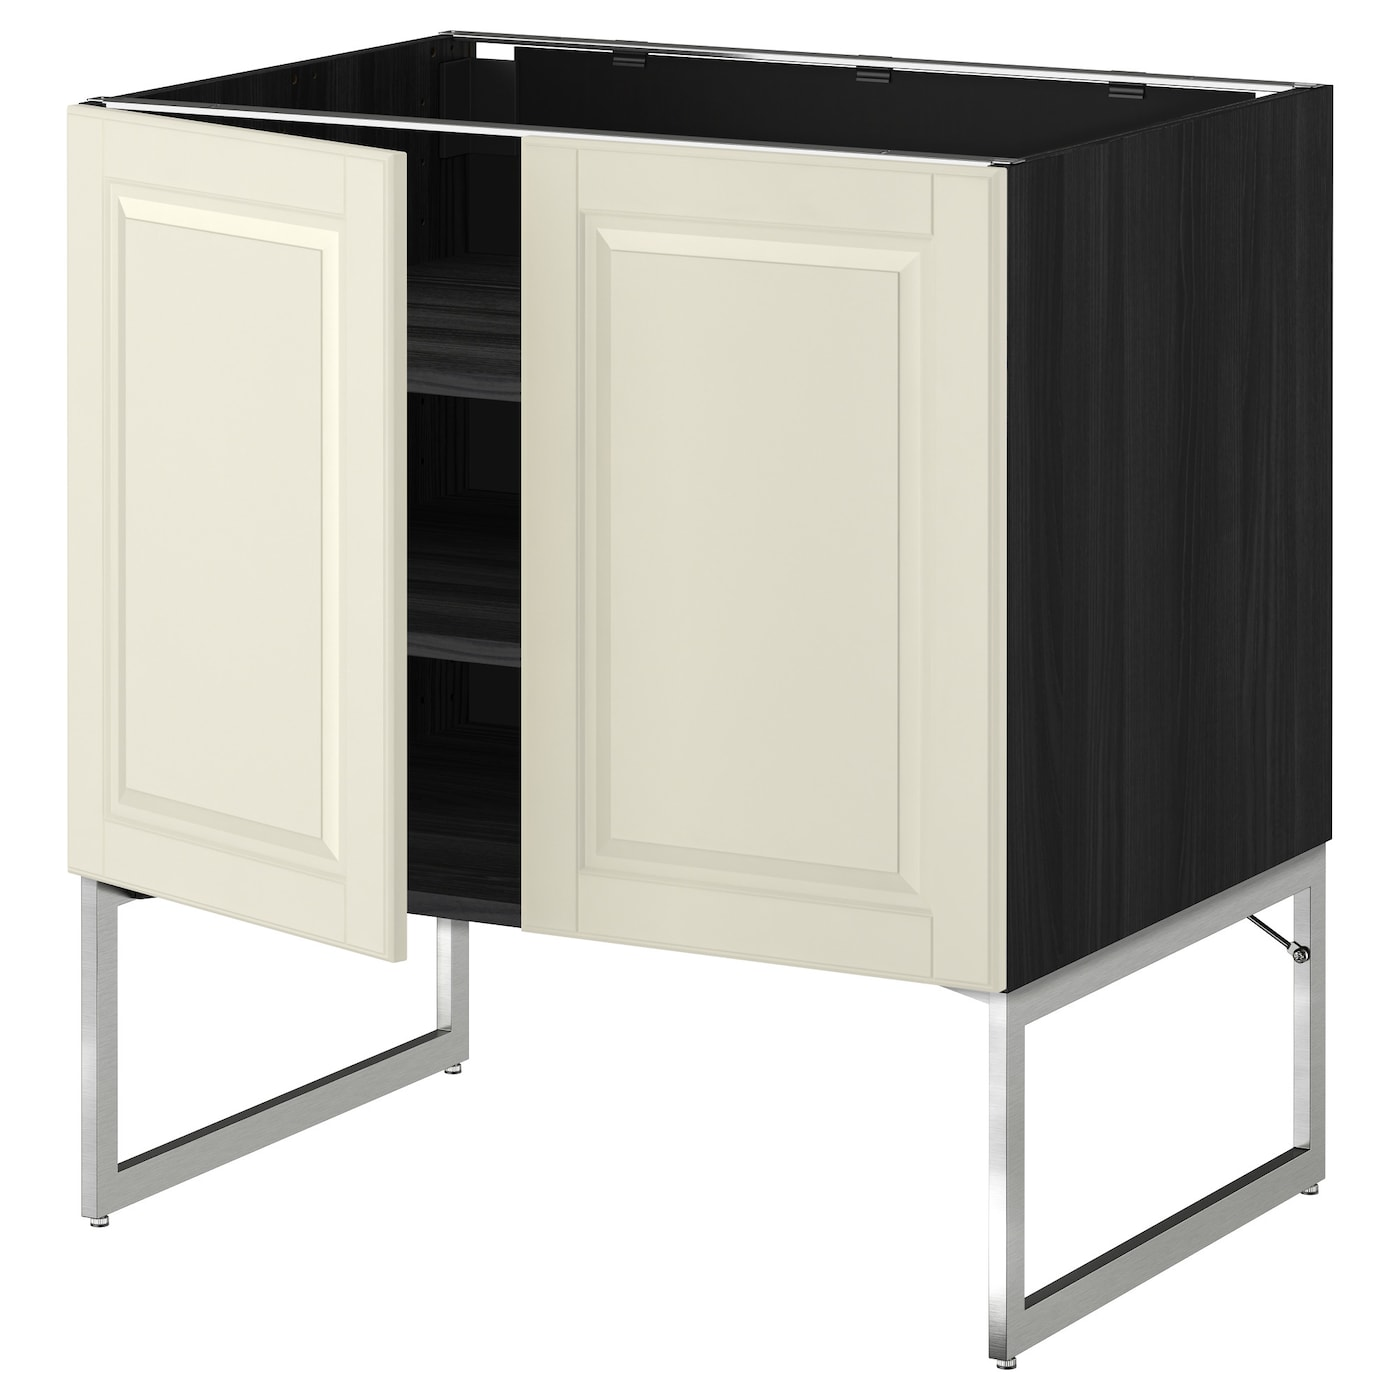 METOD Base Cabinet With Shelves/2 Doors Black/bodbyn Off